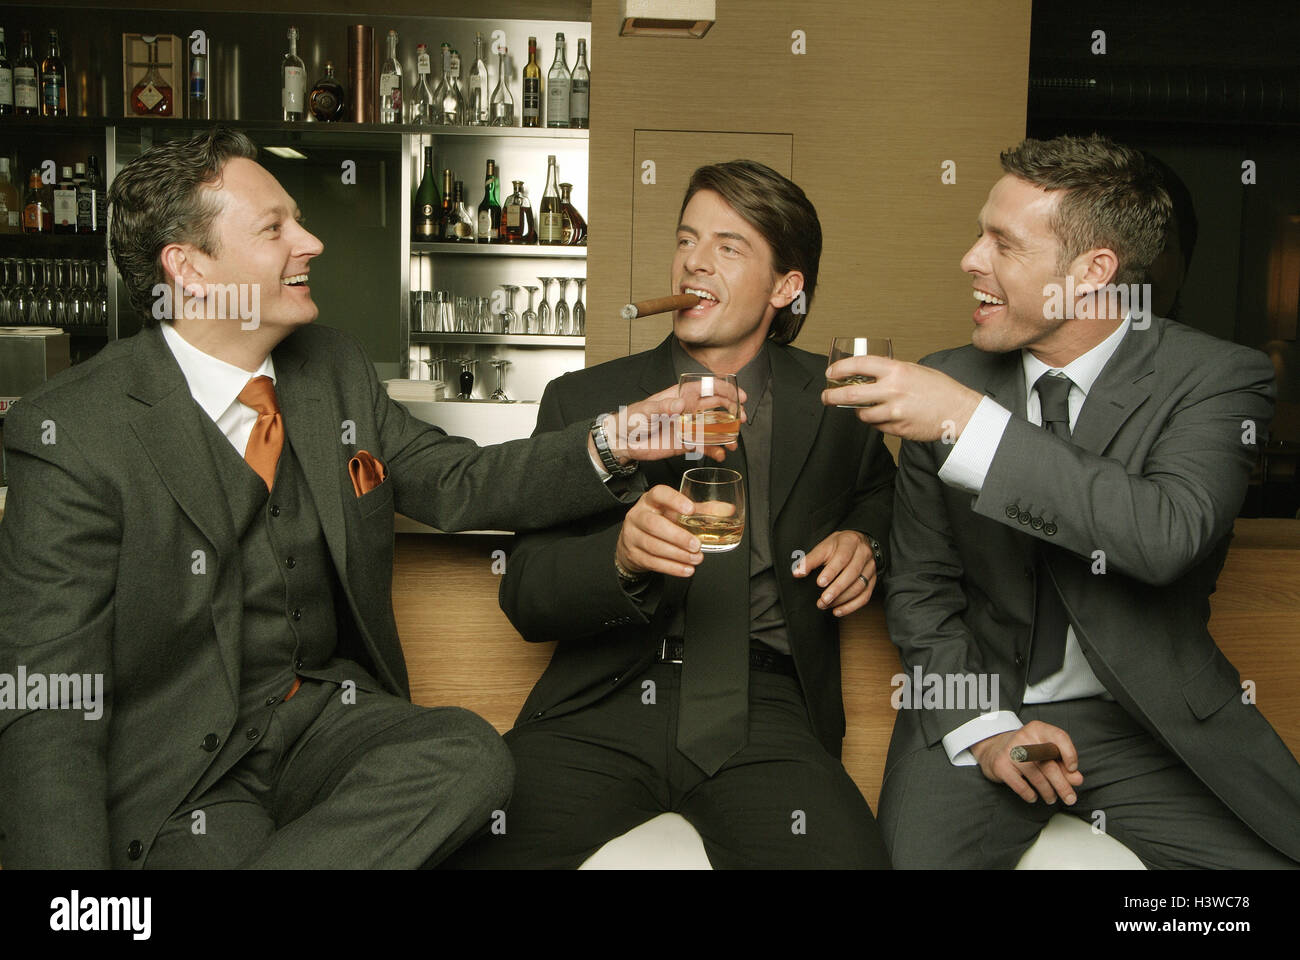 Smokers Break Stock Photos & Smokers Break Stock Images